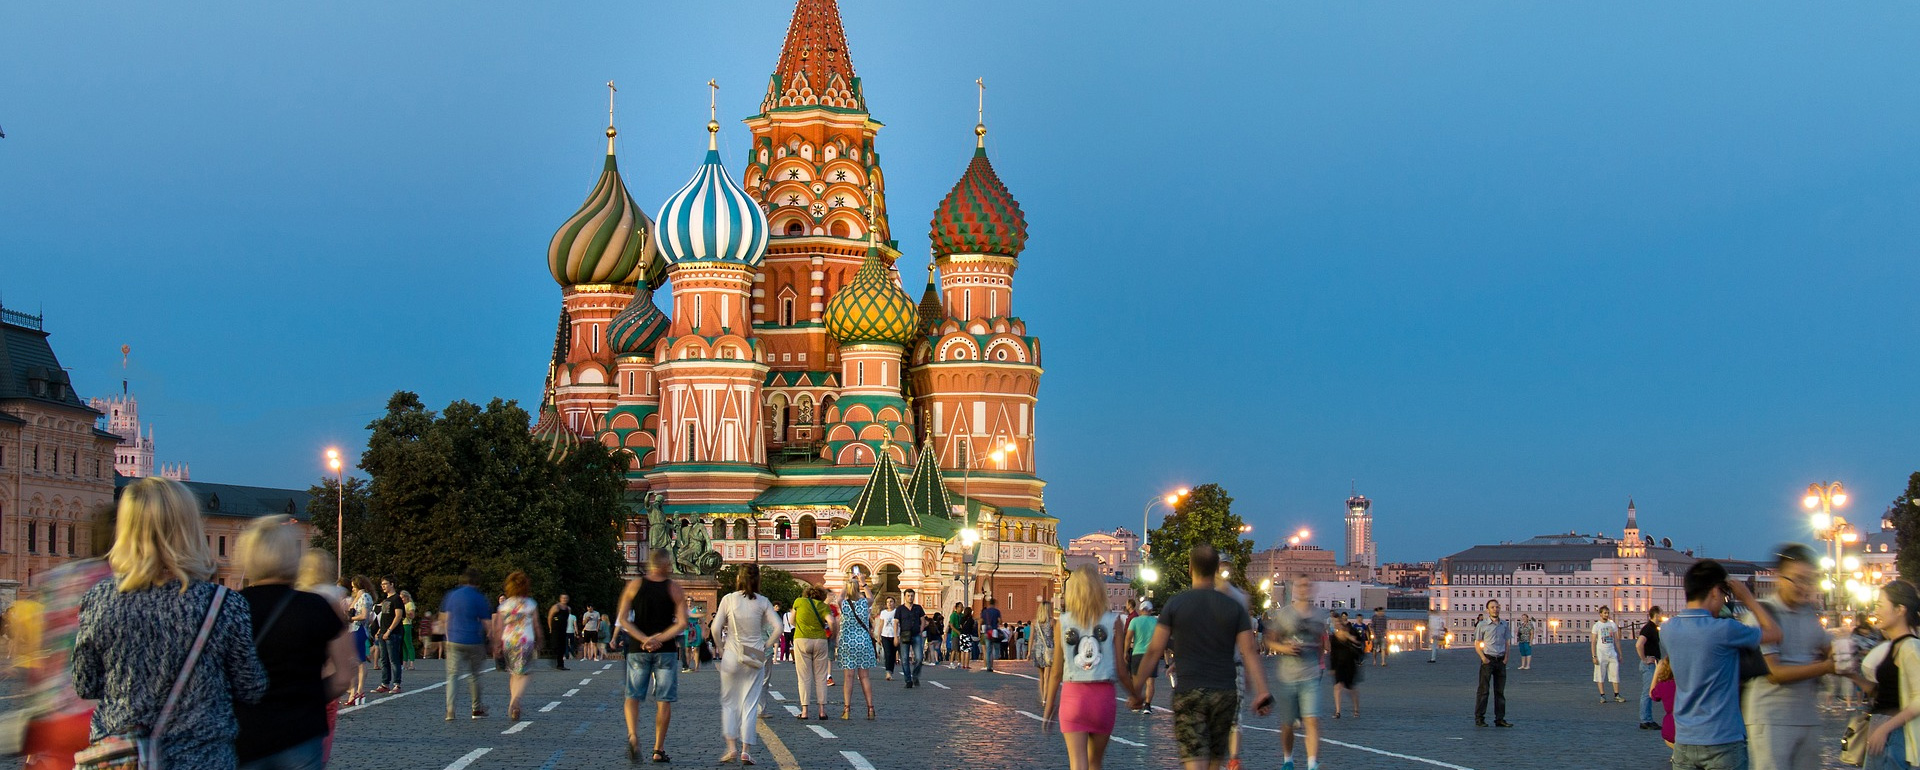 Moscow Red Square Center Tour Excursion Russia Russian Flight Accomodation Luxury Student Travel Language Beauty Soveit Union